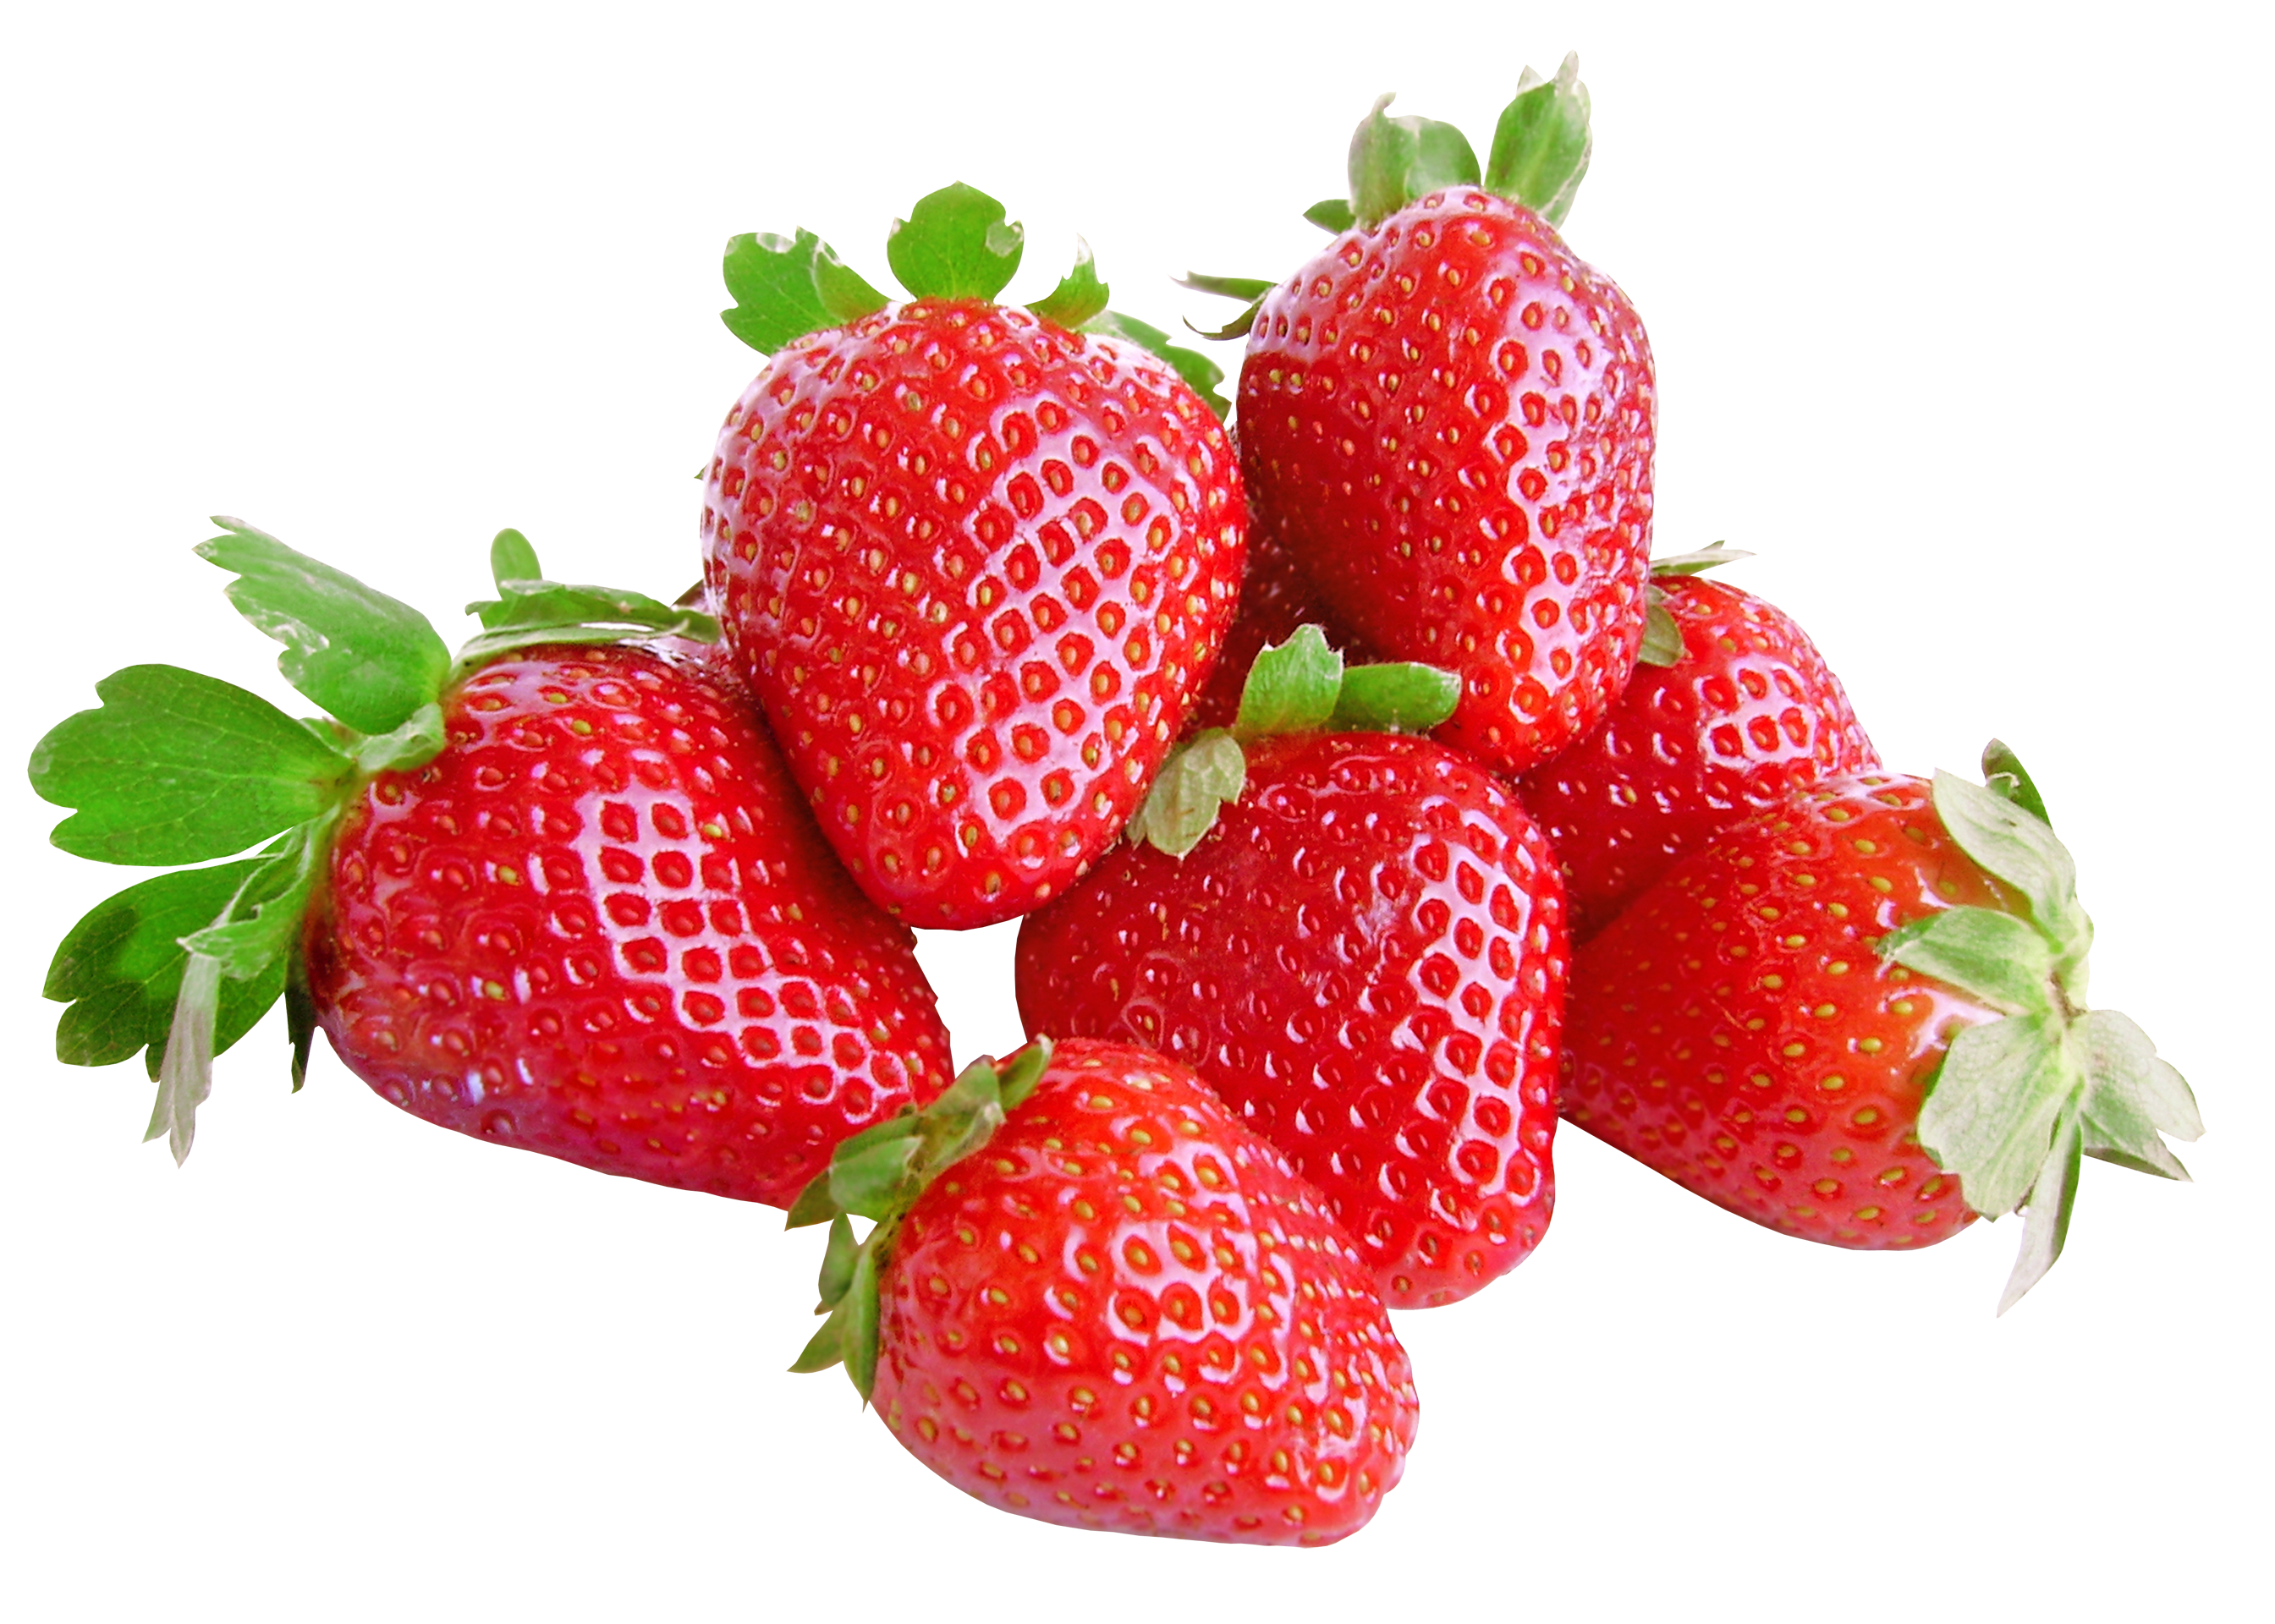 Strawberry PNG images - Strawberry PNG